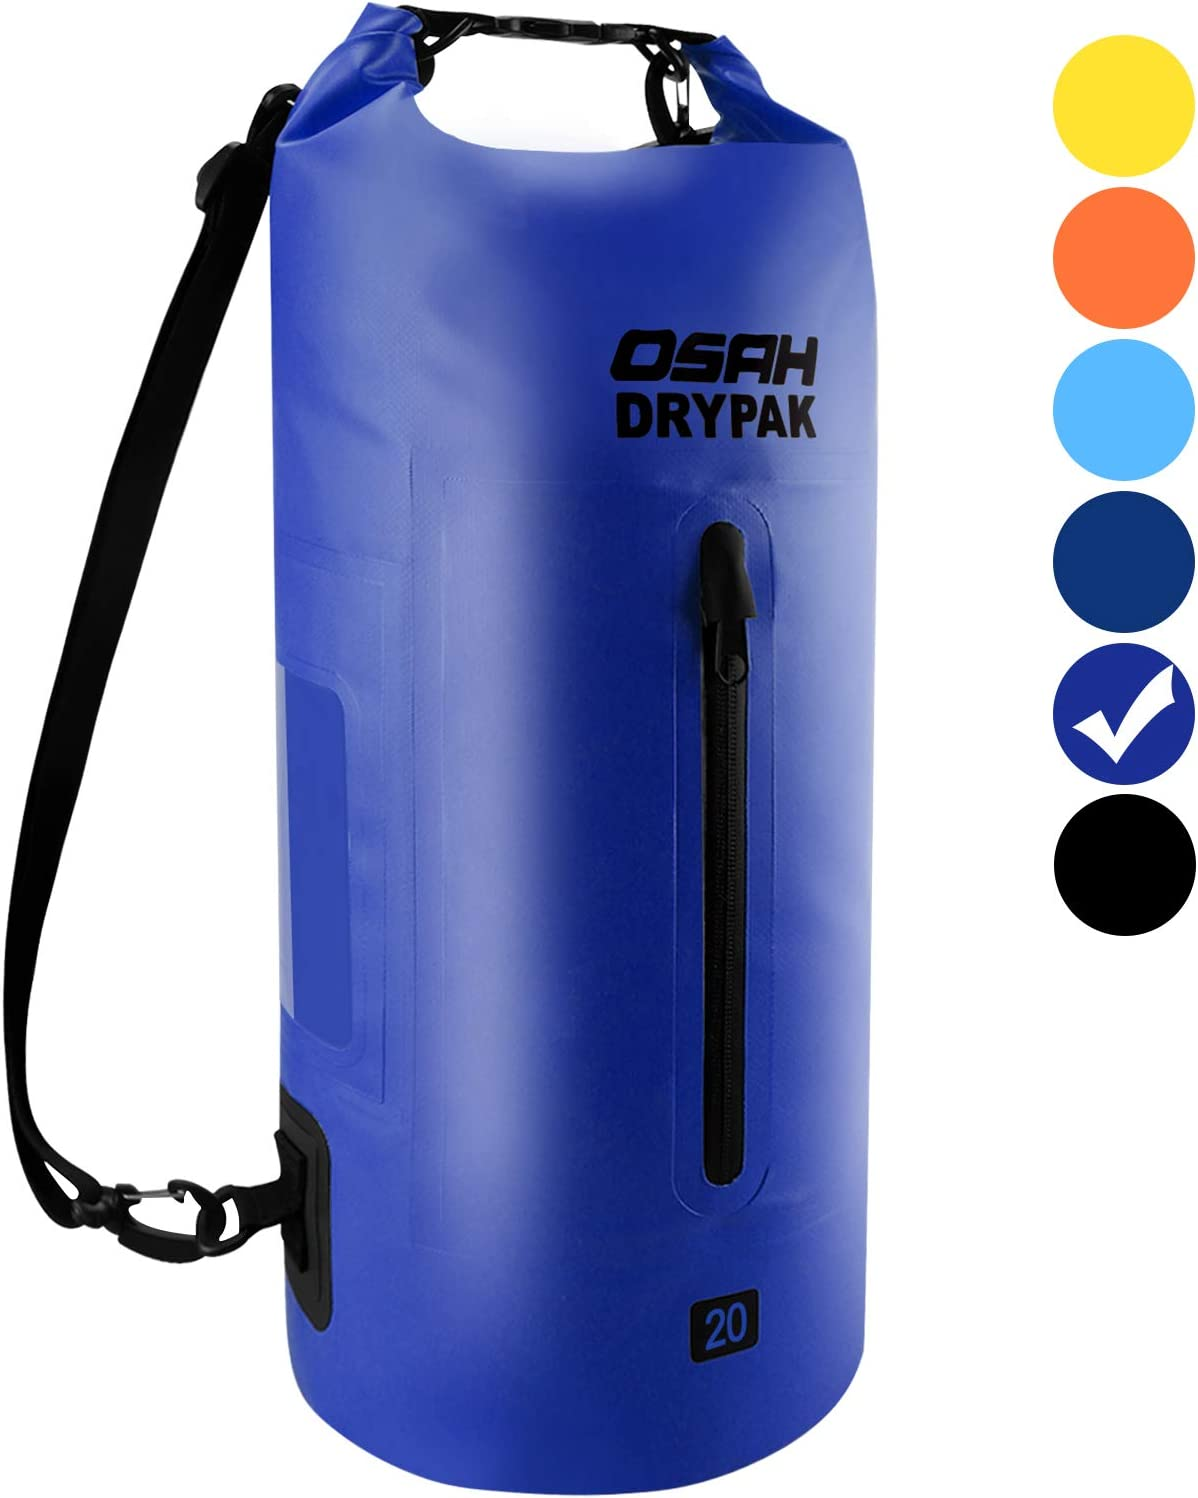 OSAH DRYPAK Waterproof Dry Bag 5L 10L 15L 20L 30L Dry Sack Bags with Shoulder Straps Keeps Gear Dry for Boating Kayaking Camping Hiking Swimming Rafting Beach Fishing